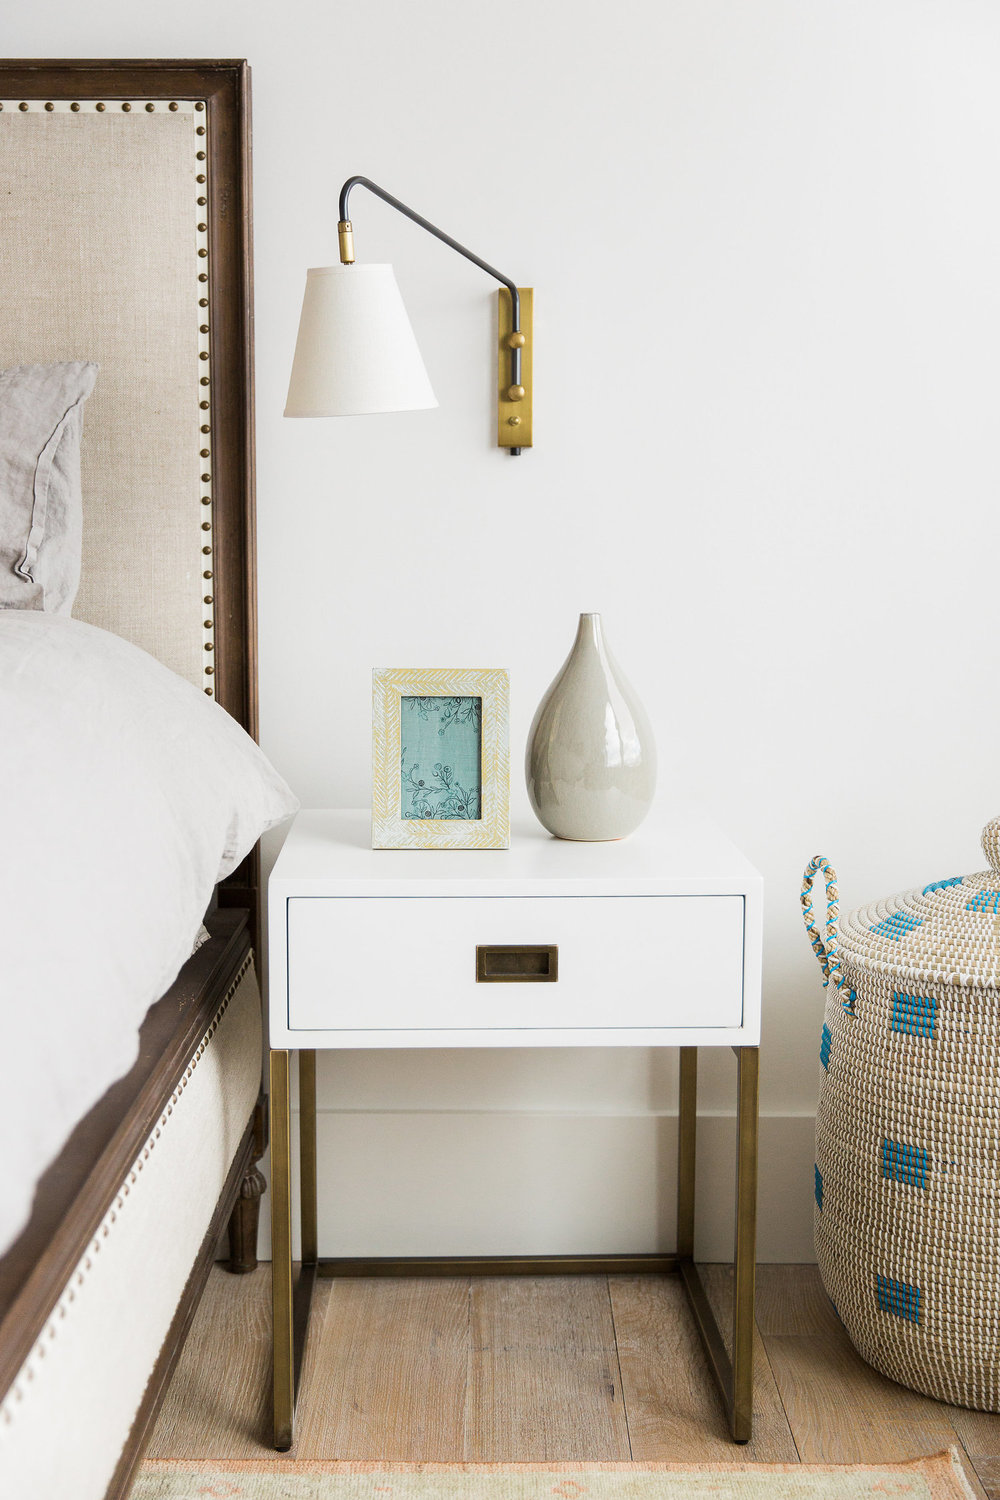 White nightstand beneath mounted lamp